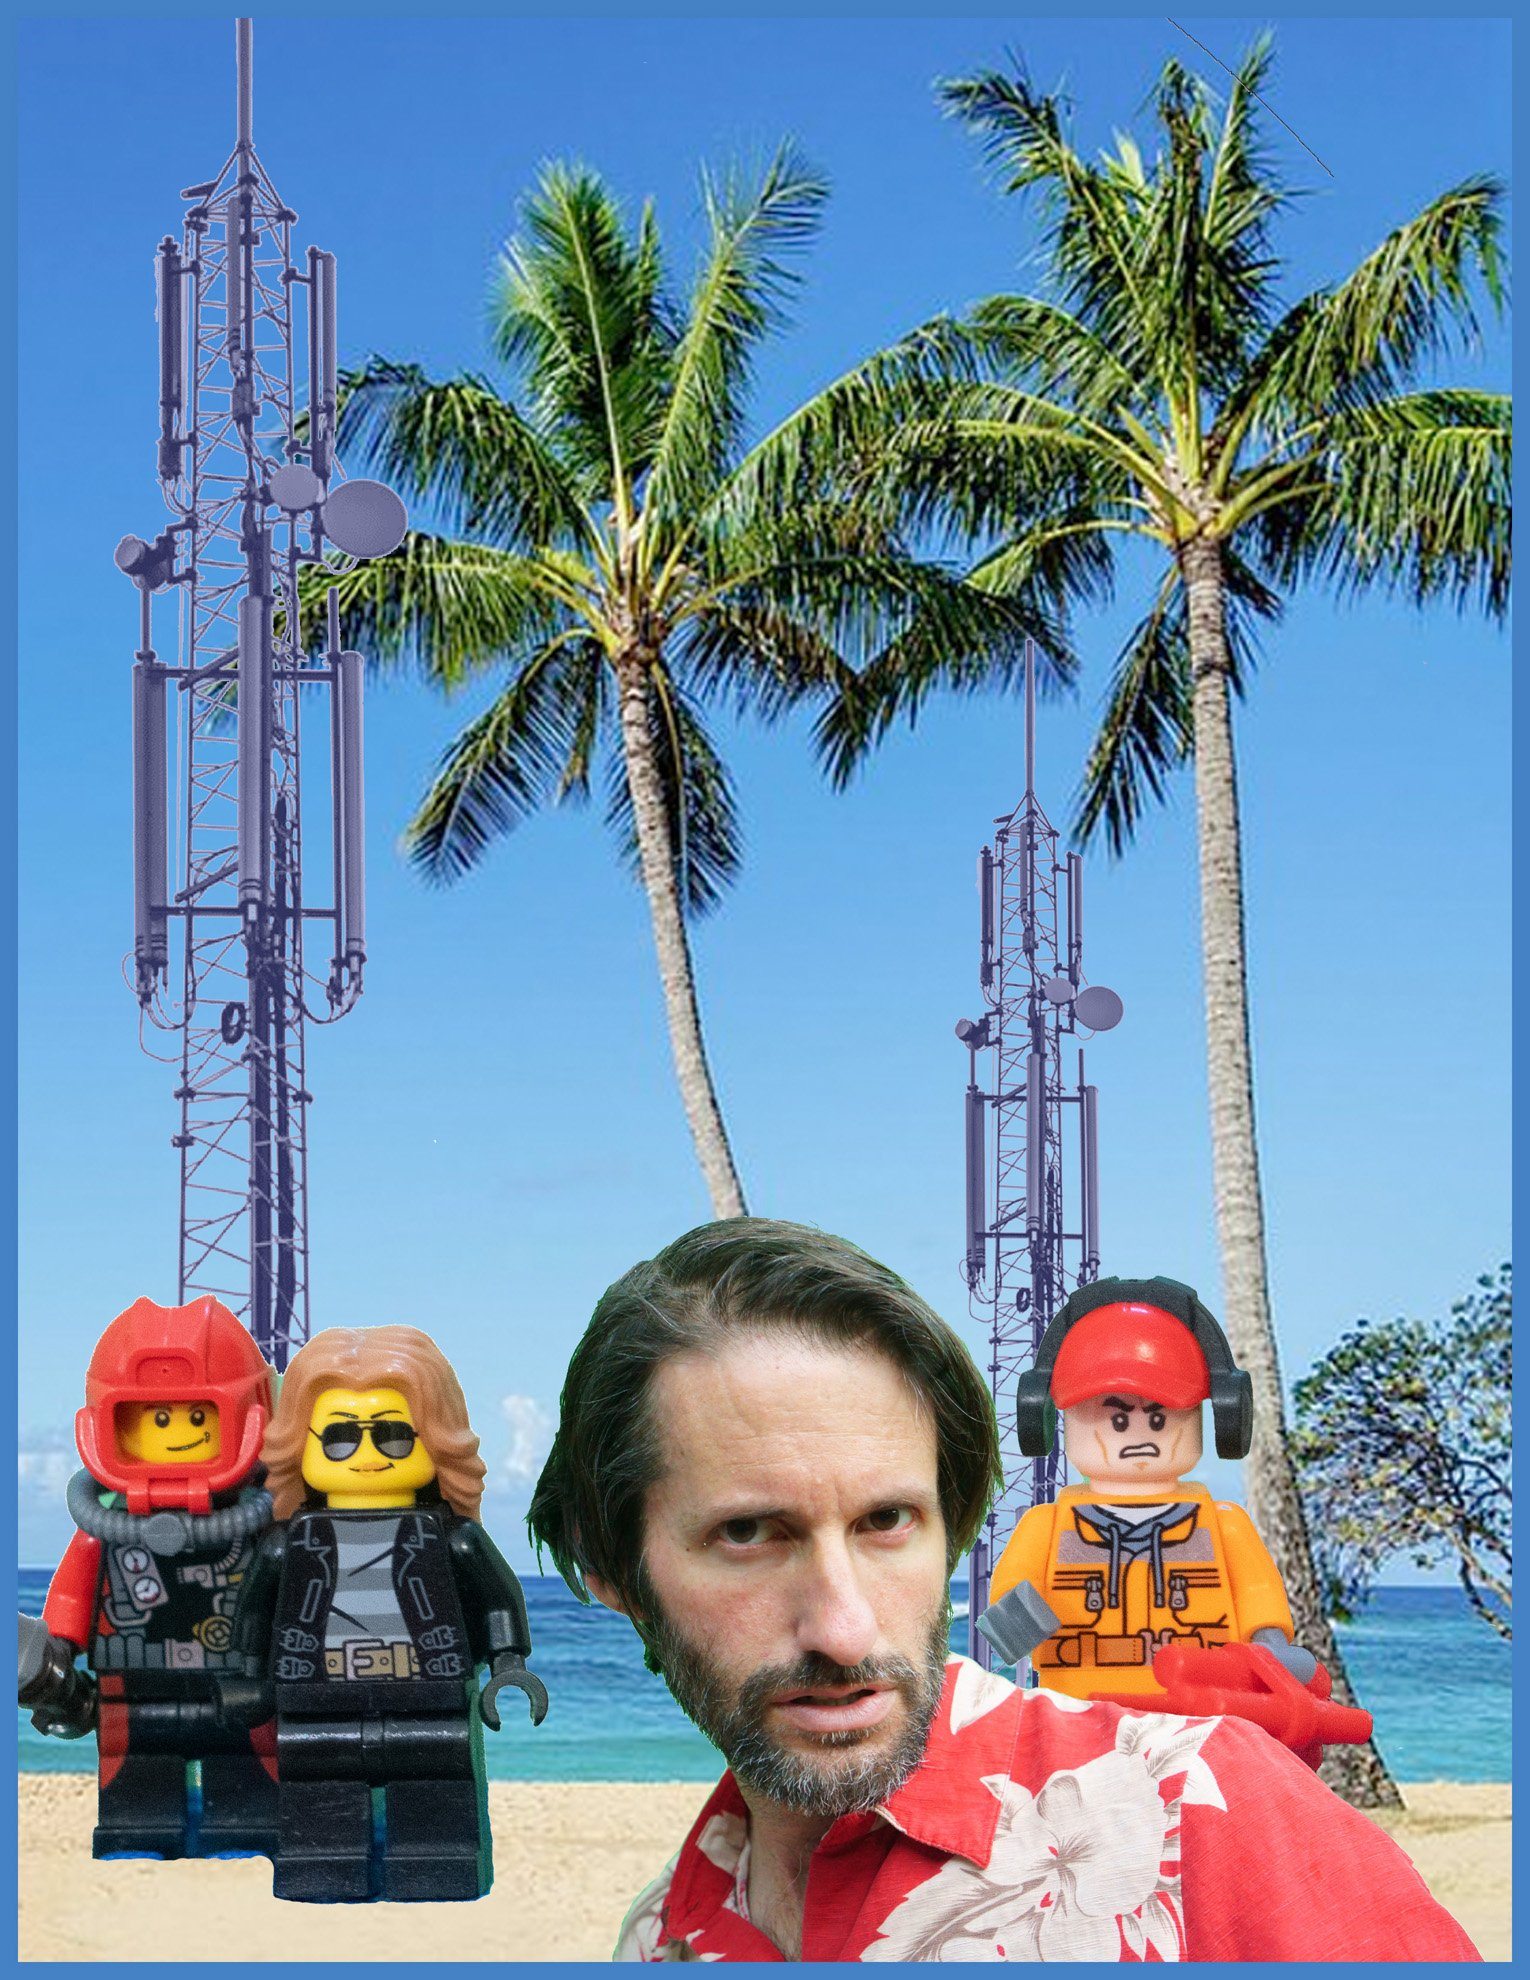 h5g jon with legos and towers